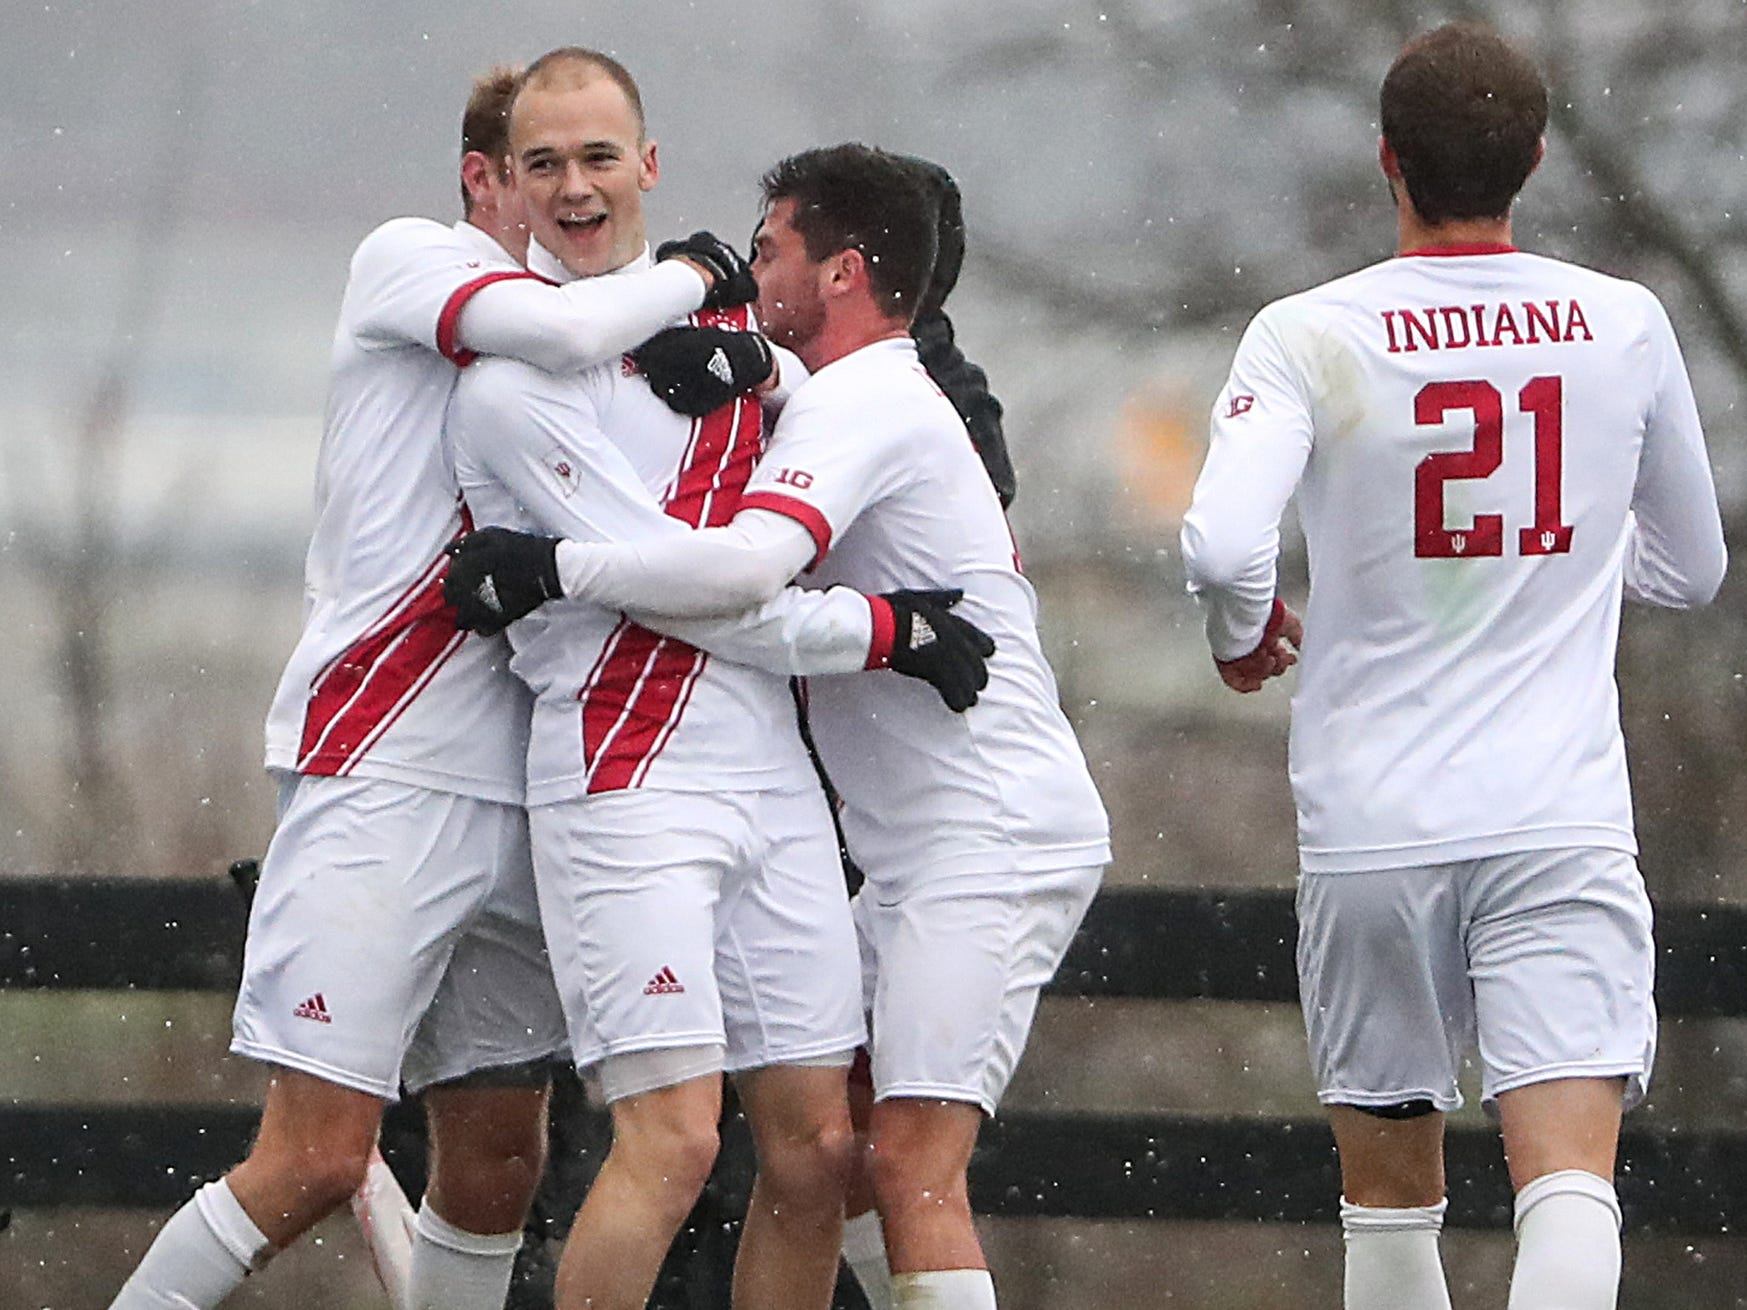 The Indiana Hoosiers celebrate a goal by Andrew Gutman (15) during the second half of Big Ten semifinals at Grand Park in Westfield, Ind., Friday, Nov. 9, 2018. Indiana and Maryland tied 1-1, with the Hoosiers advancing in penalty kicks, 4-3.